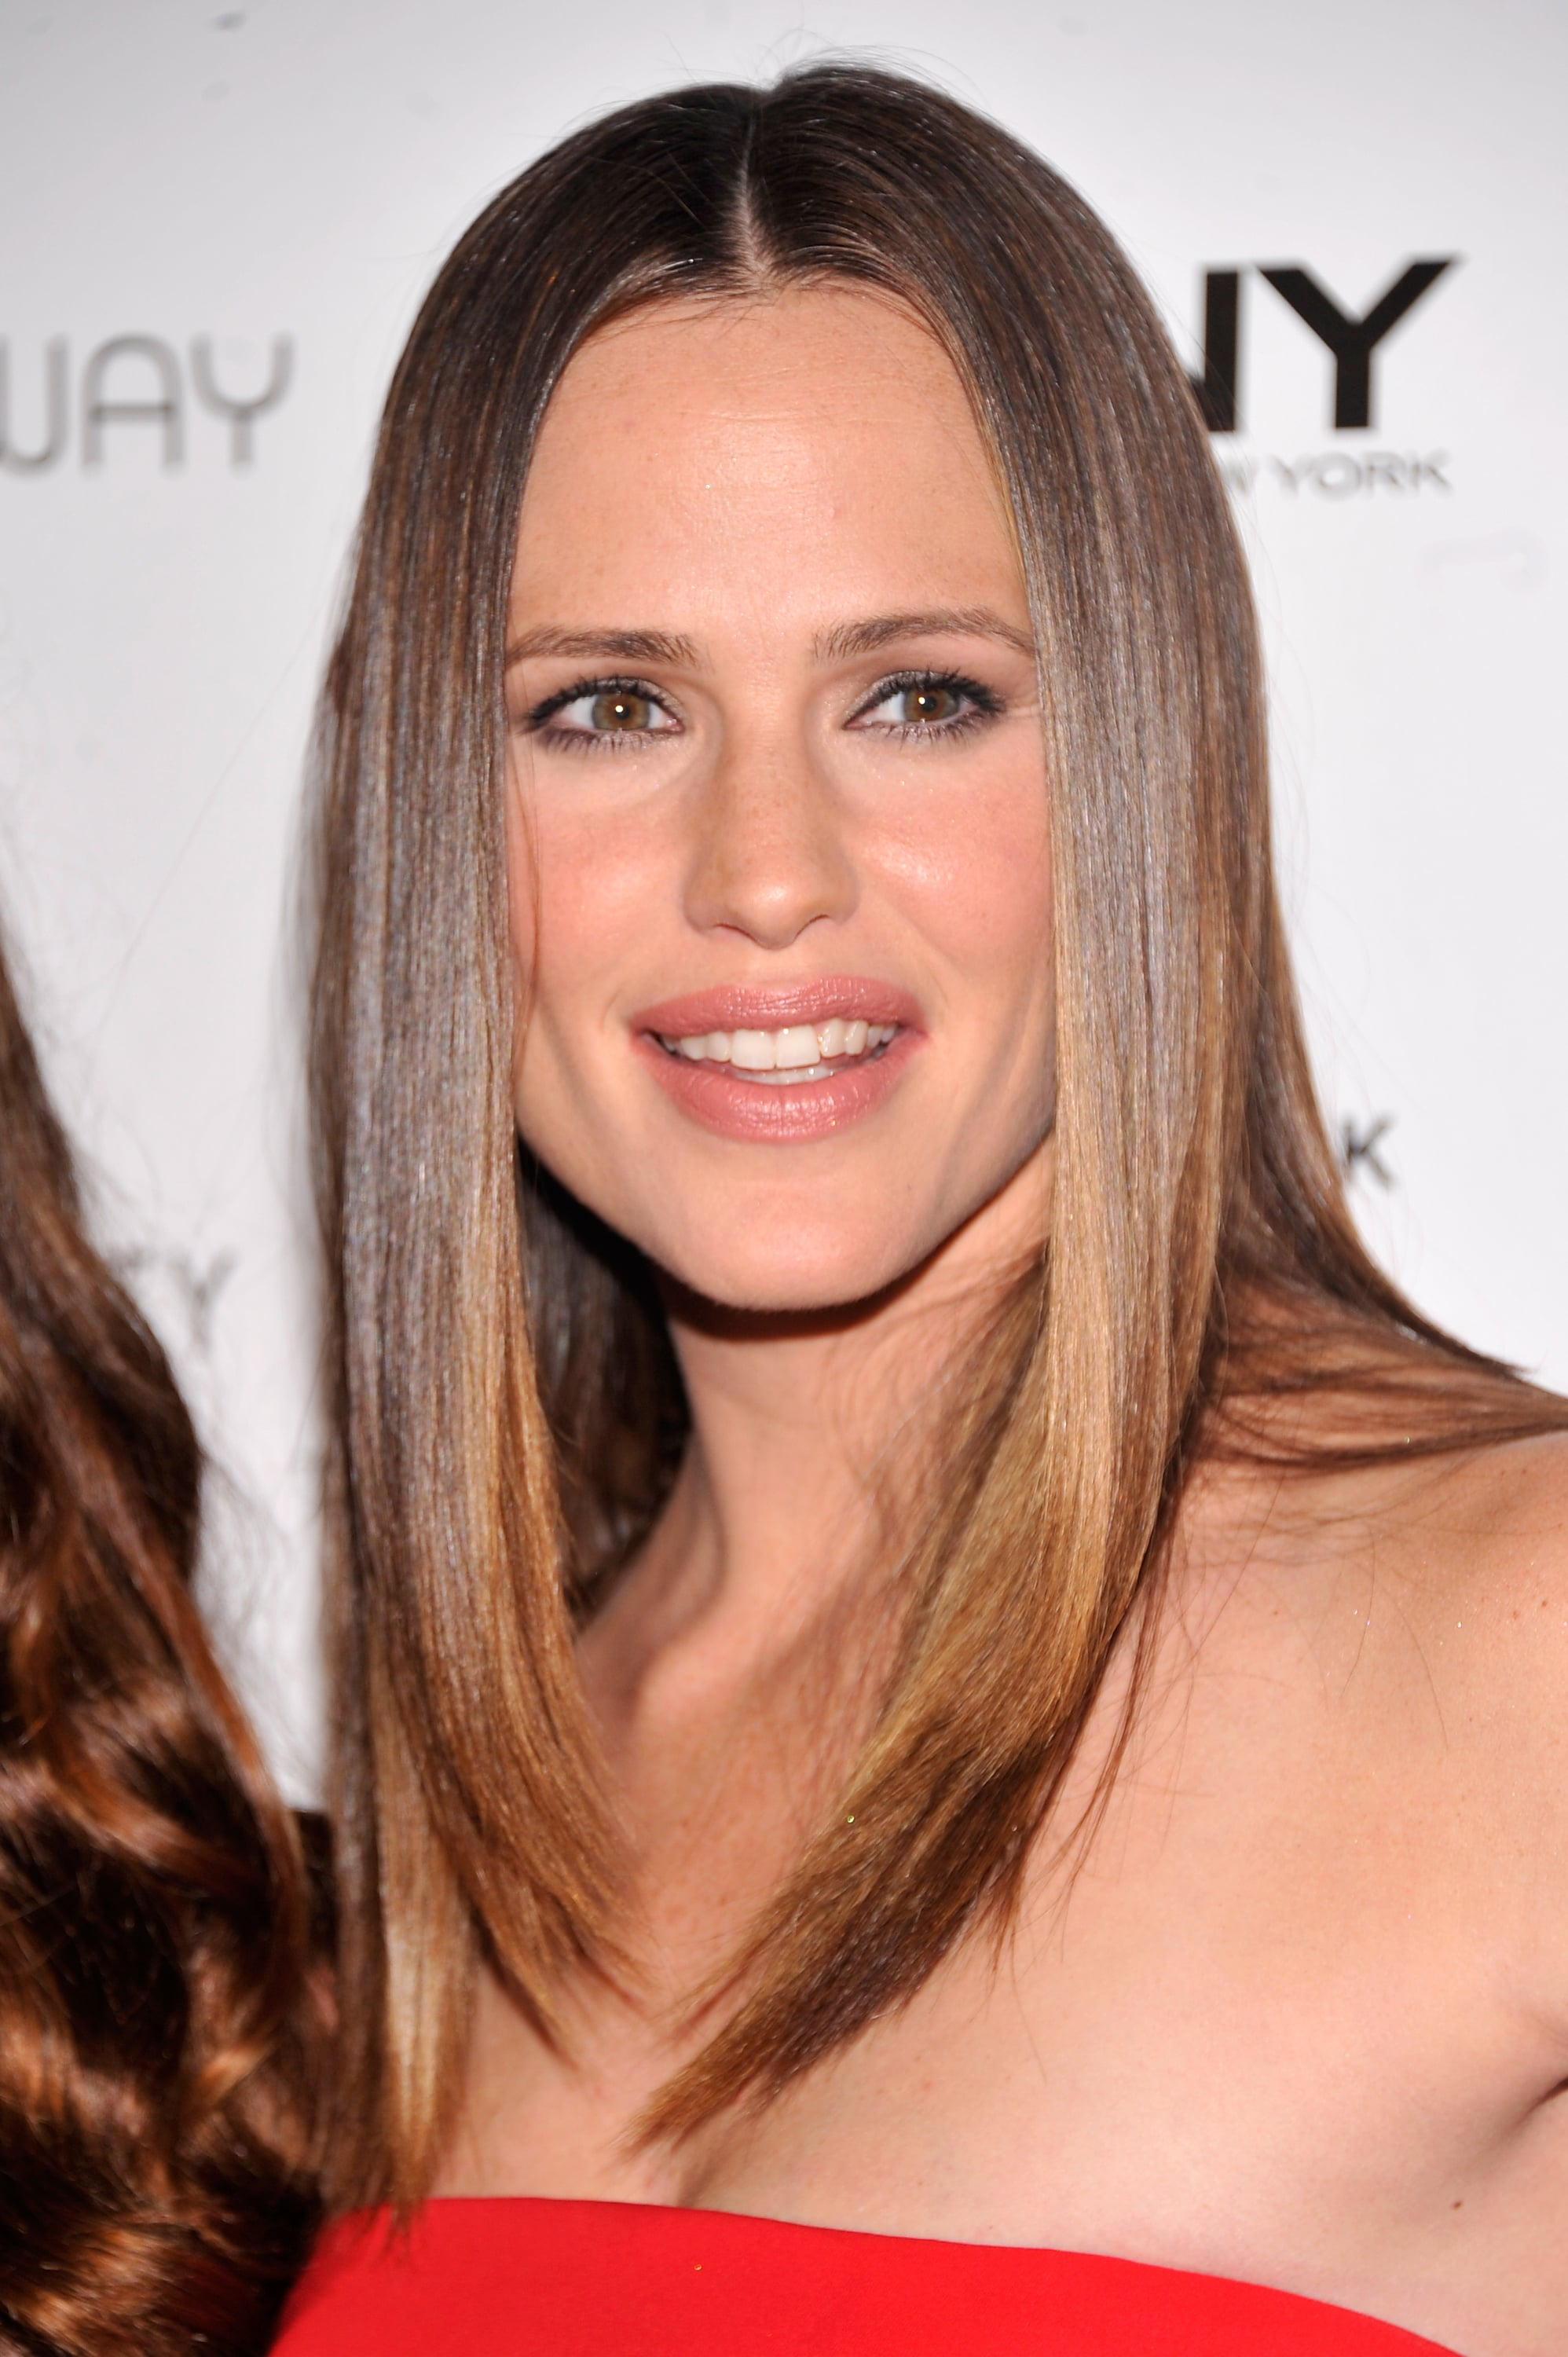 Jennifer Garner Gets Sexy in Red Gucci to Party With Olivia, Alicia, and More